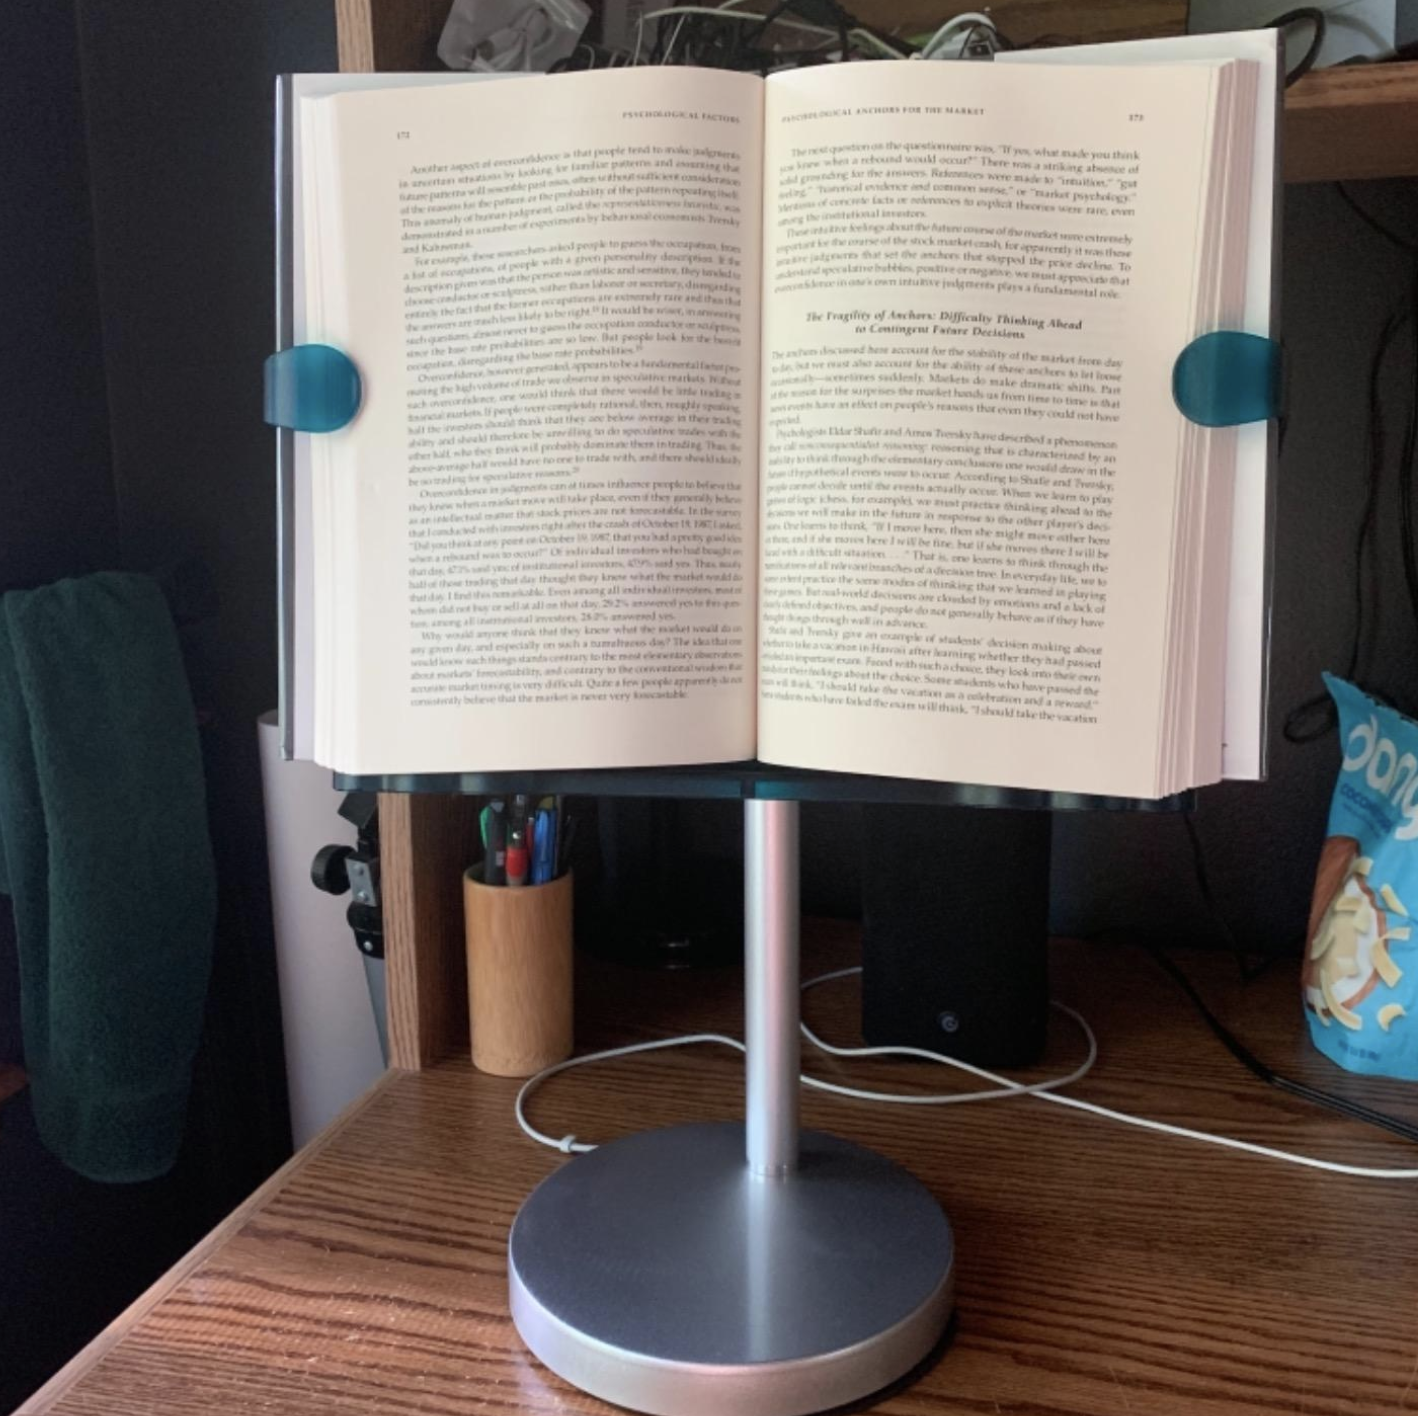 the book stand holding a big book up and open so the pages lay flat